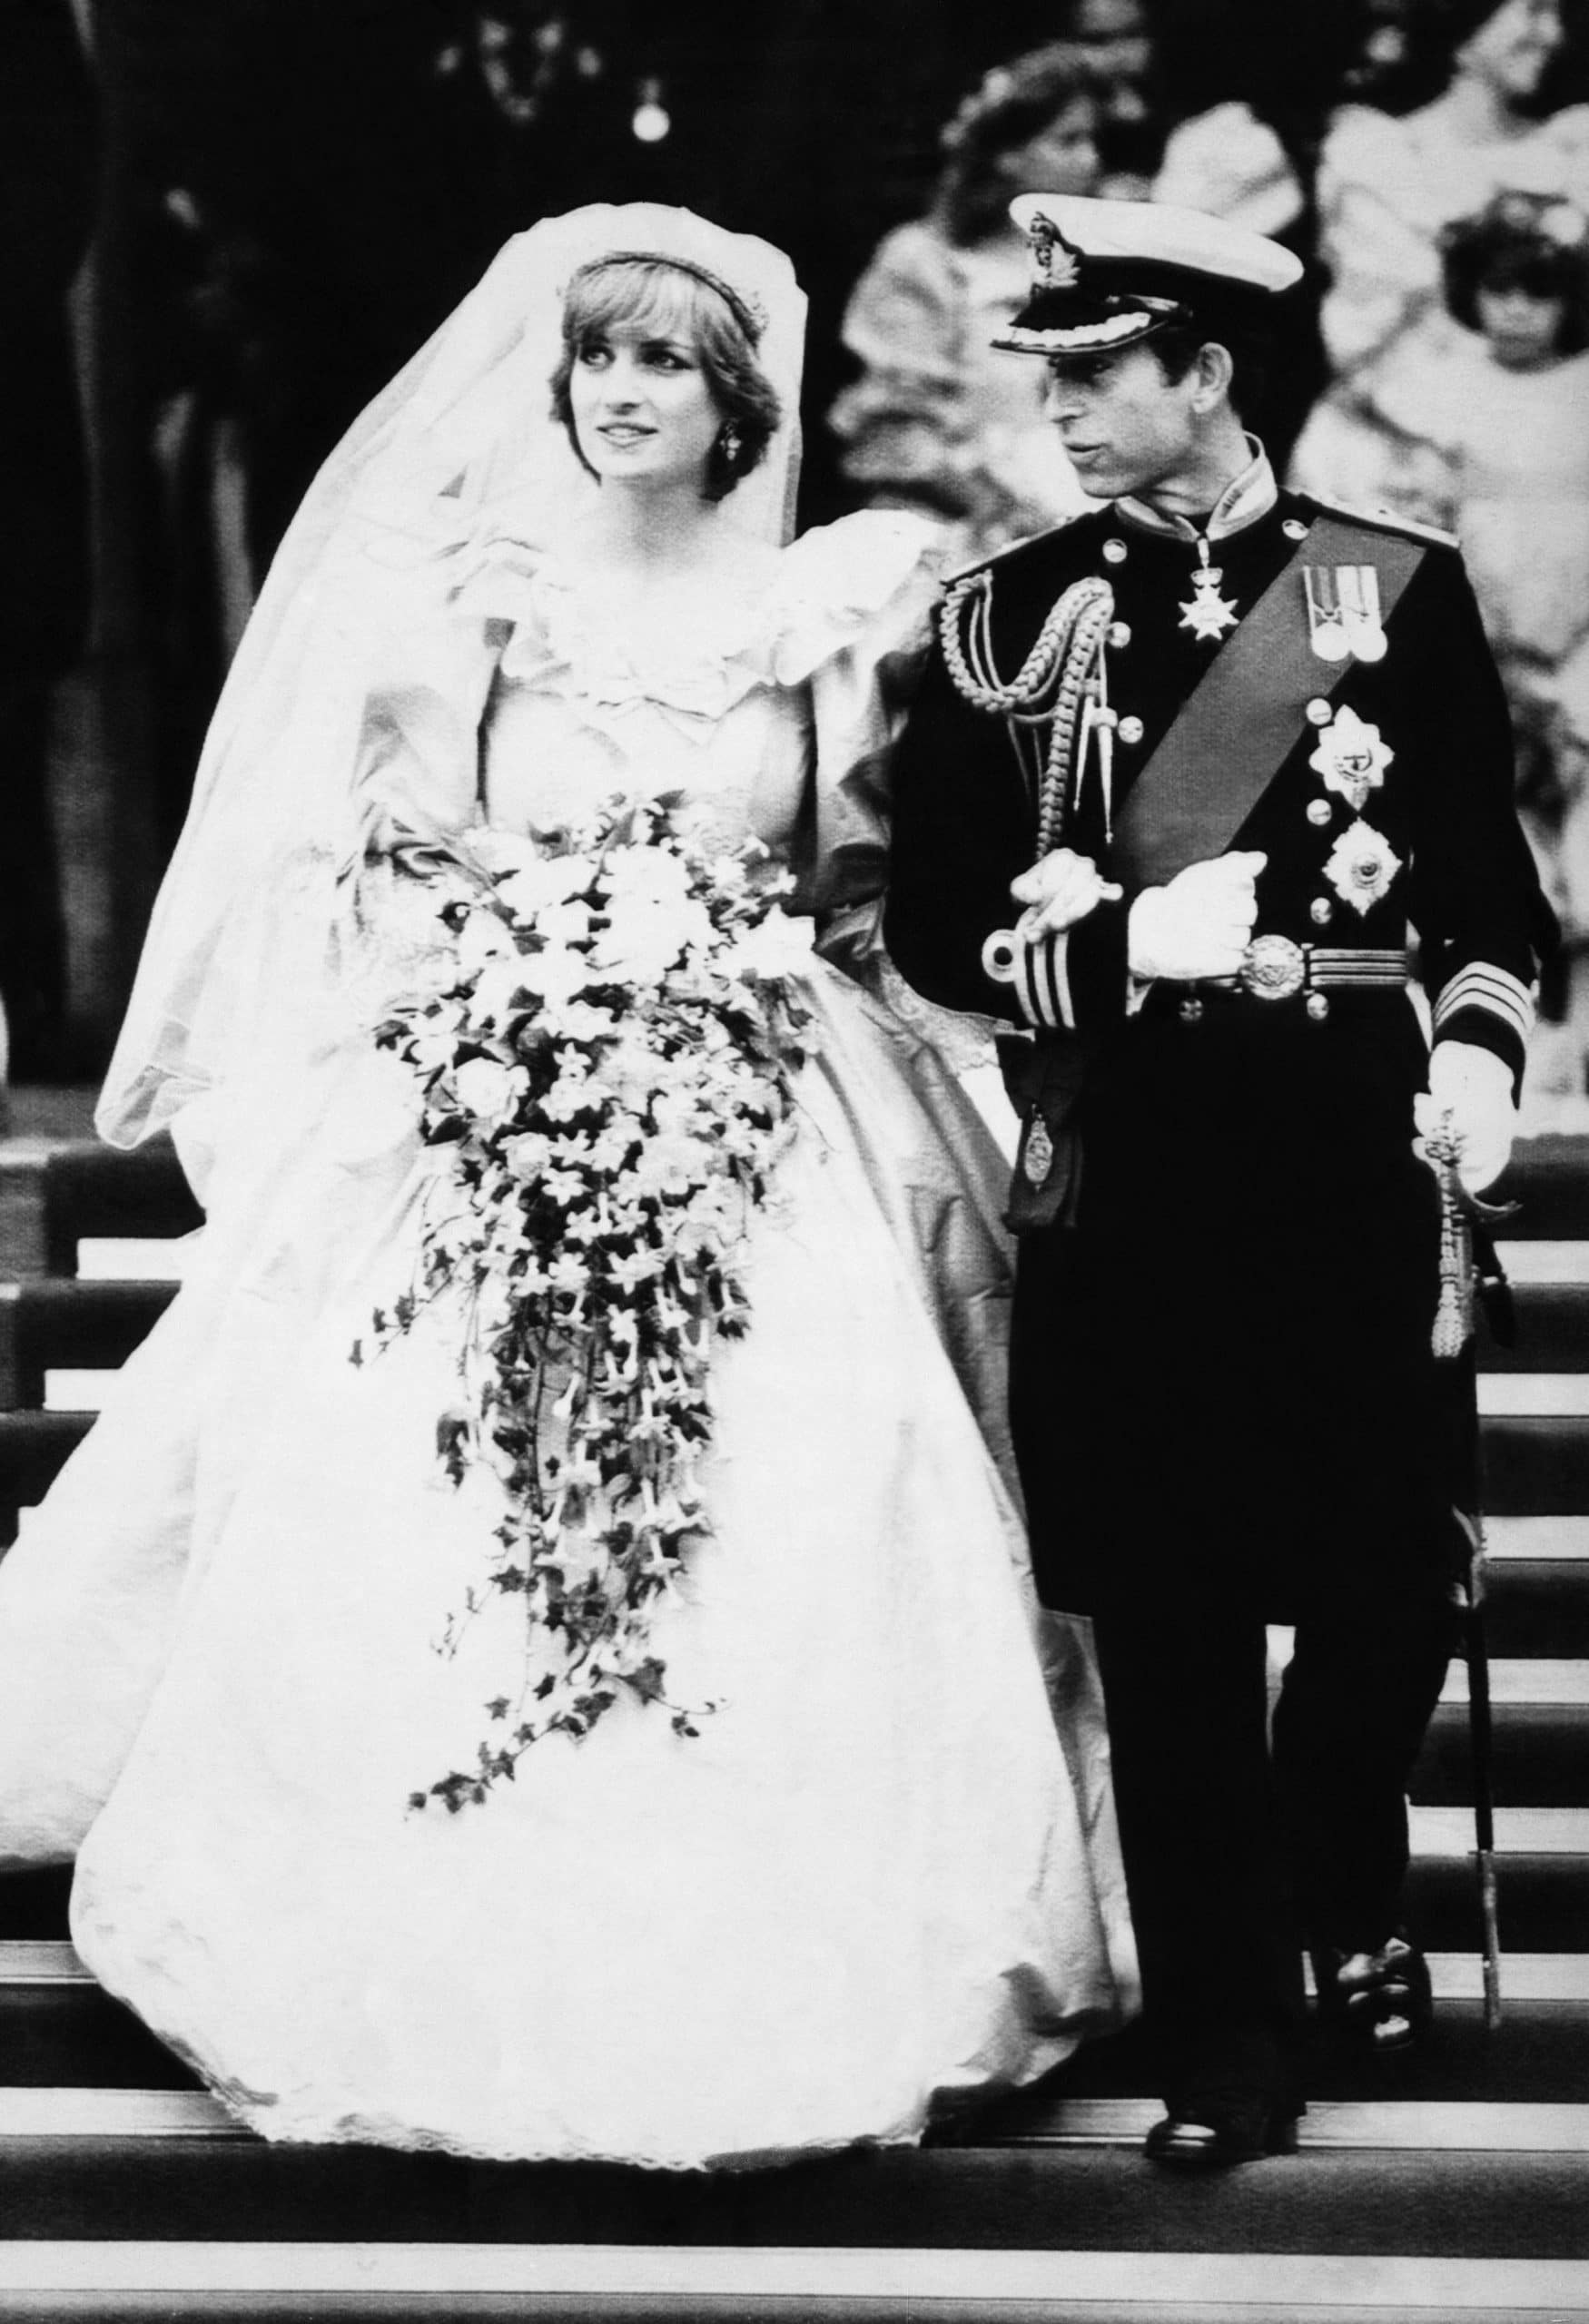 Princess Diana of Wales and Prince Charles of Wales, on their wedding day